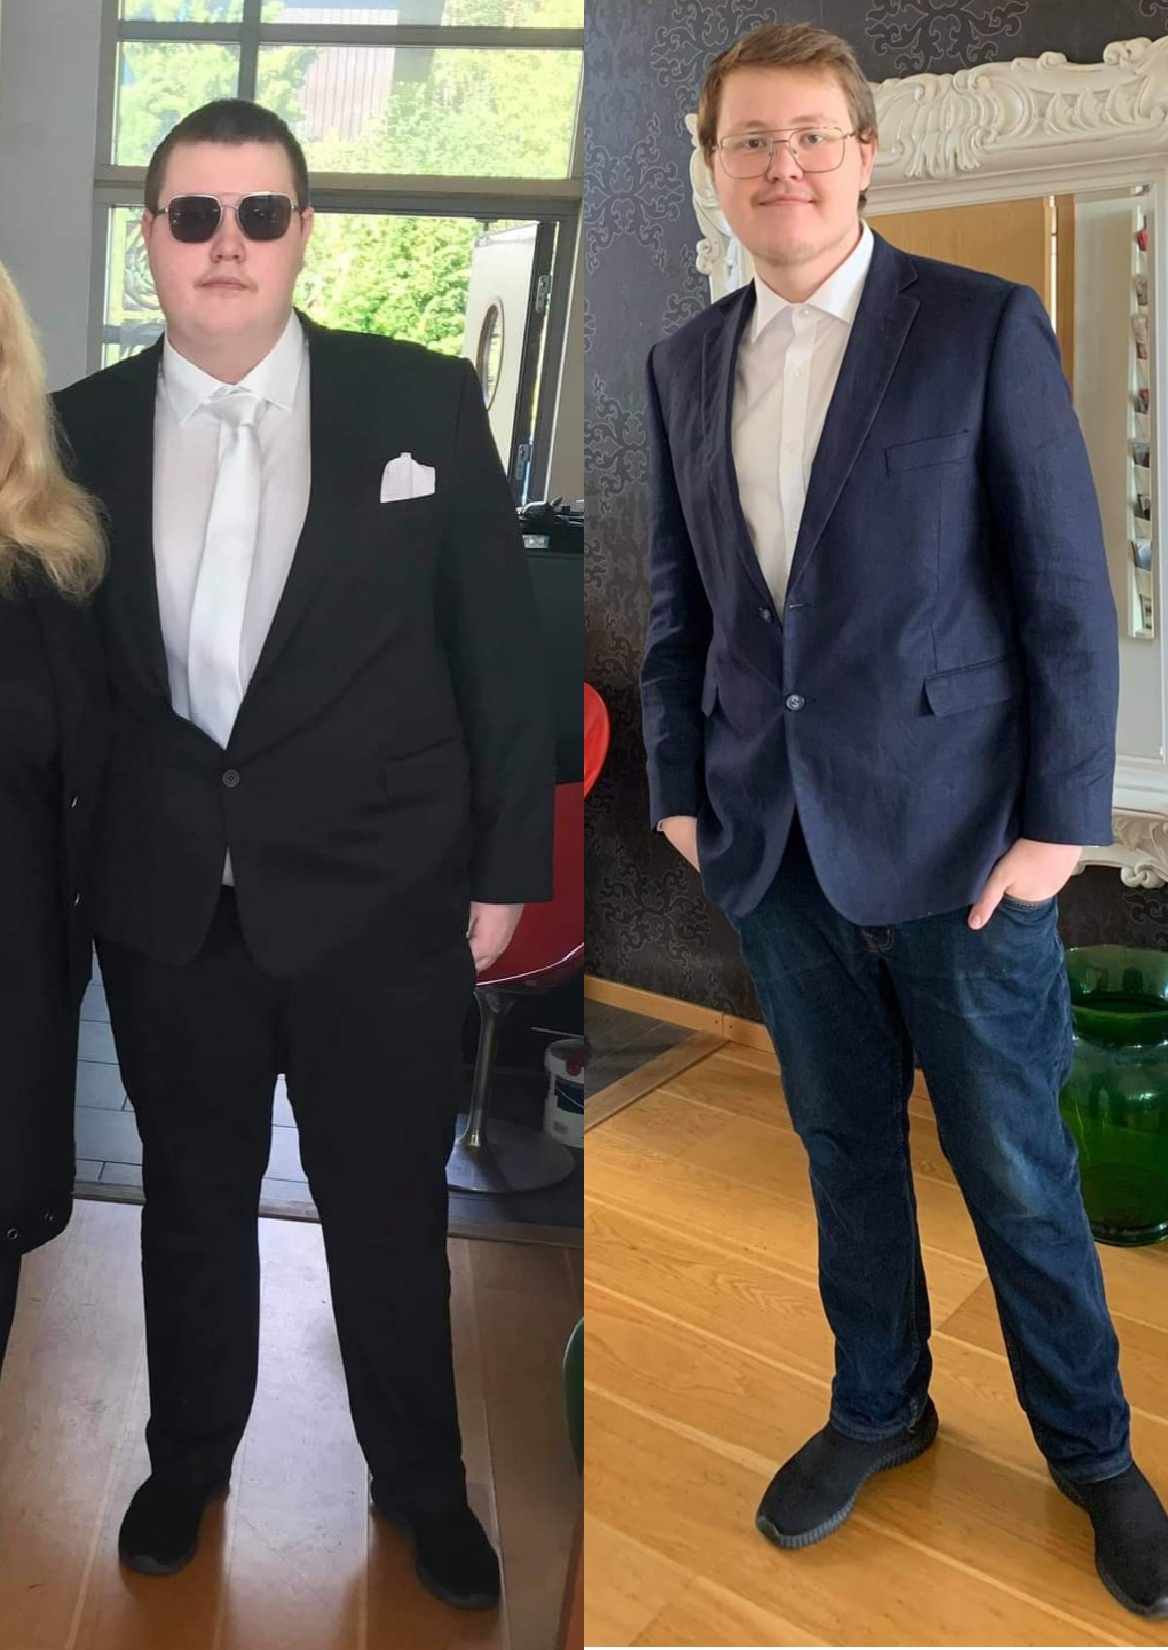 100 lbs Fat Loss Before and After 6'4 Male 330 lbs to 230 lbs